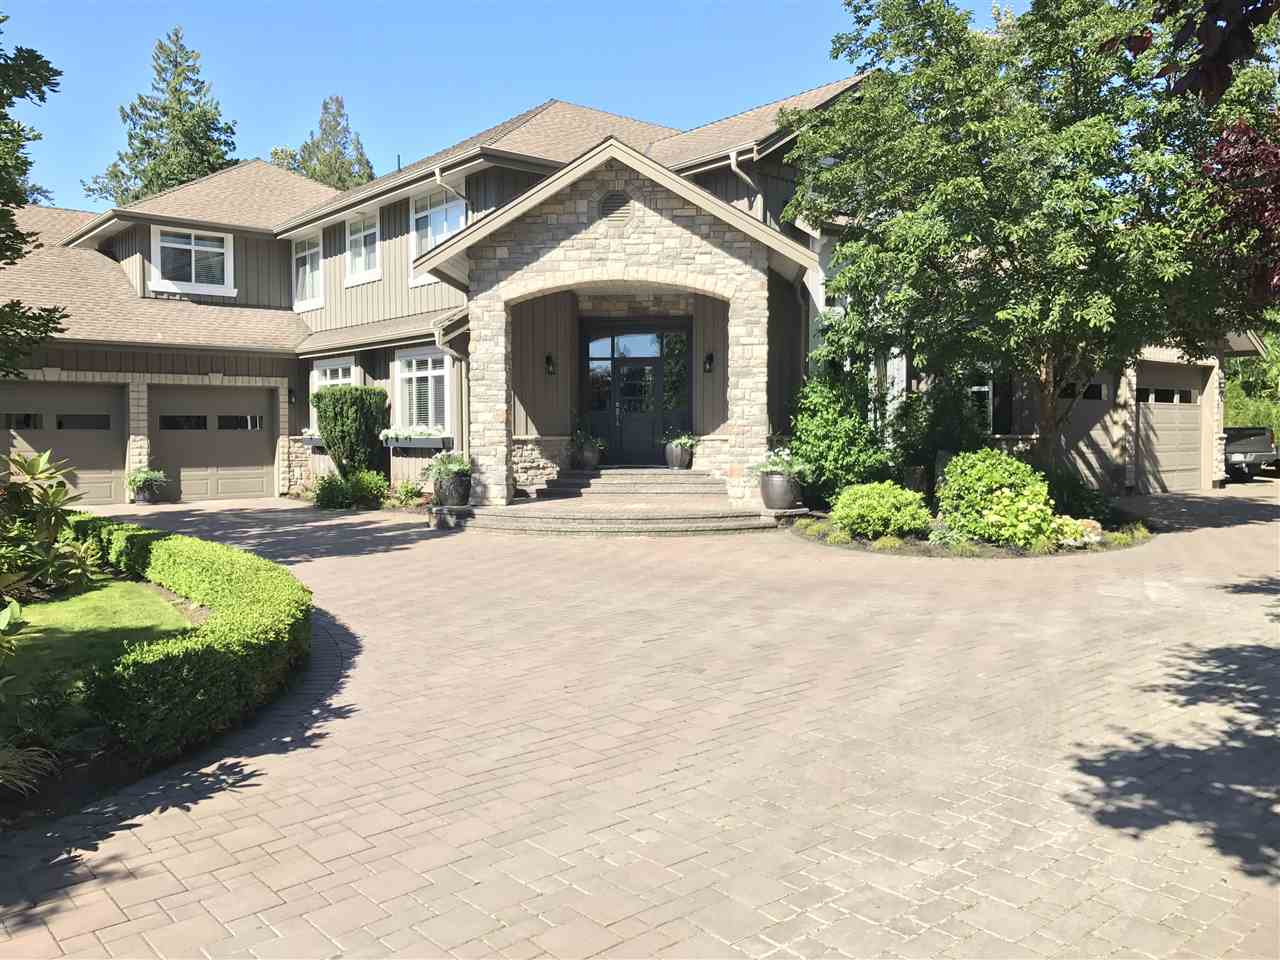 6 12530 241 STREET, Maple Ridge